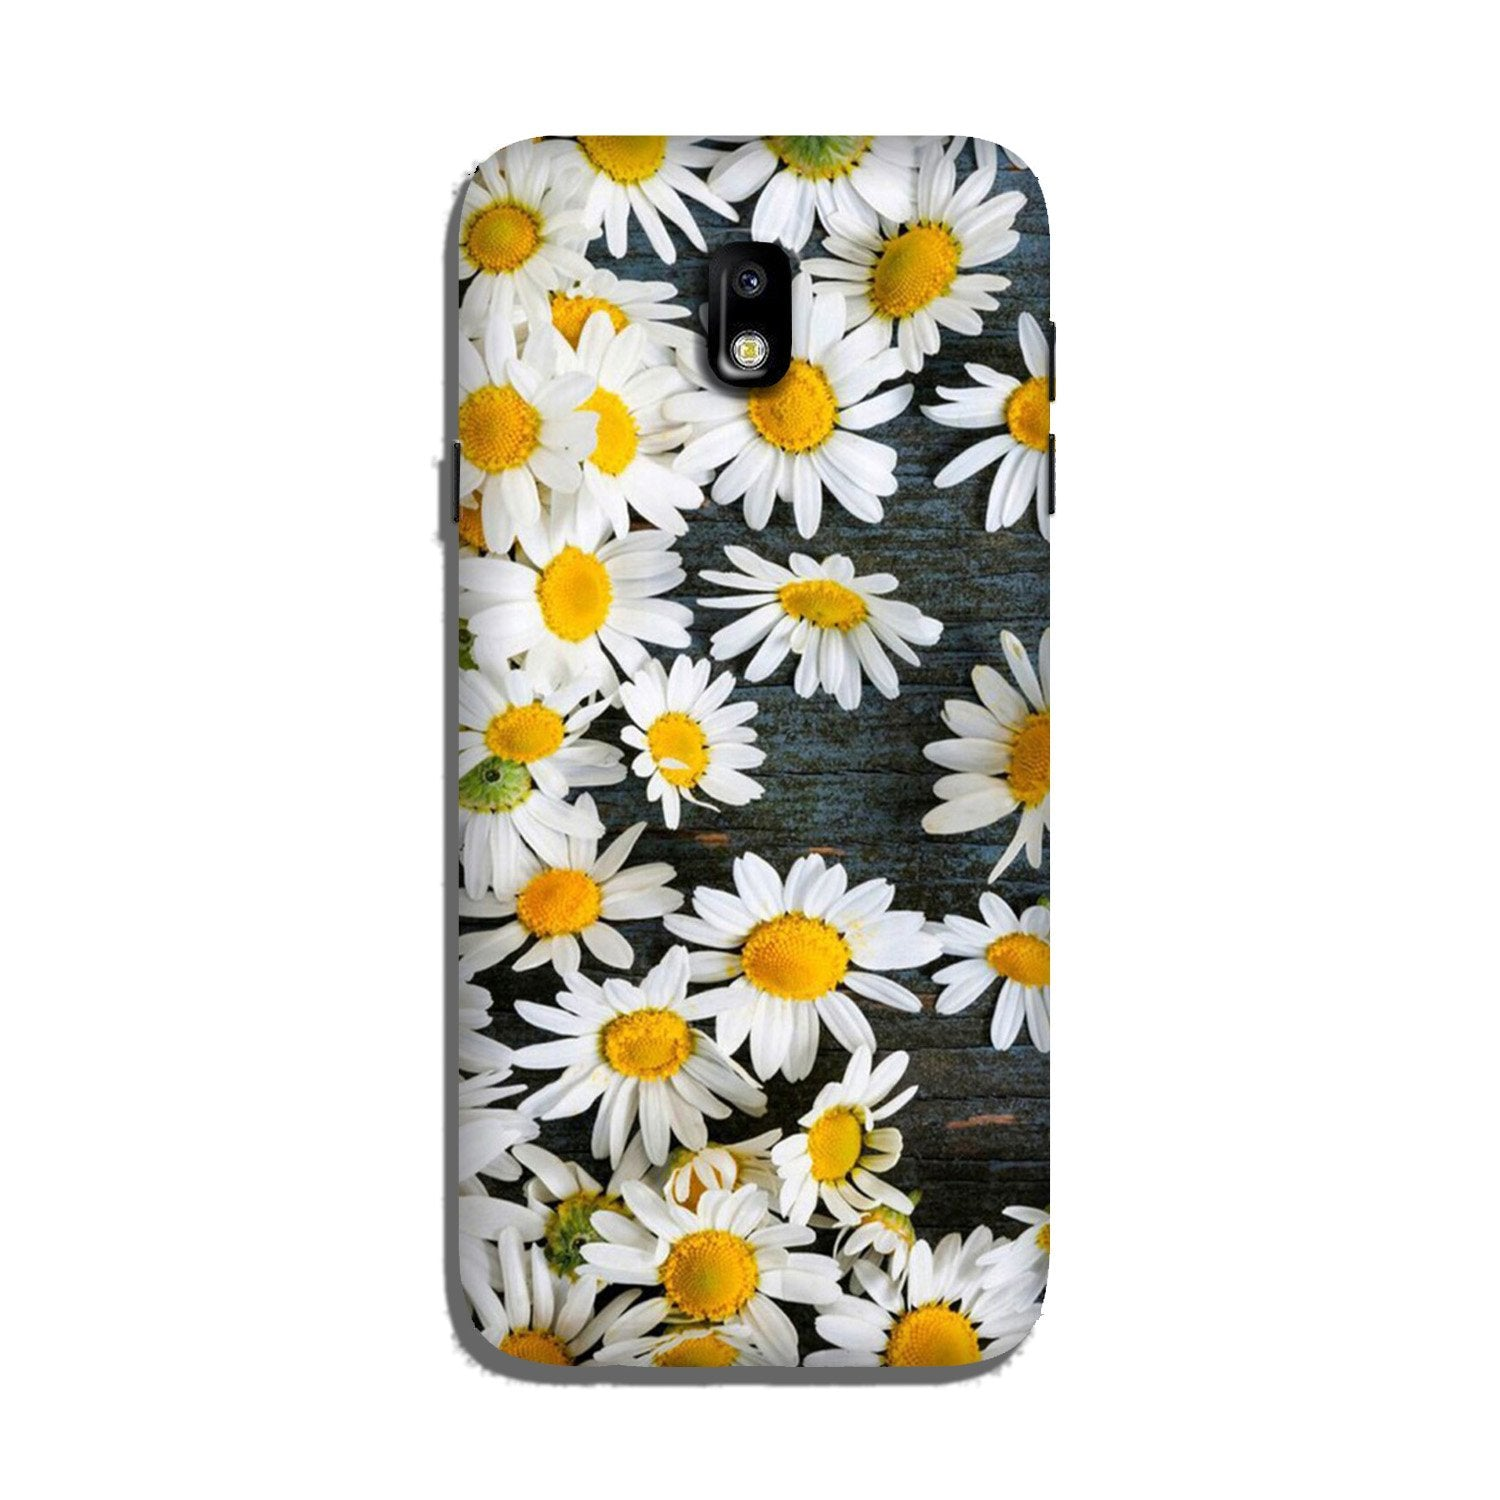 White flowers2 Case for Galaxy J7 Pro